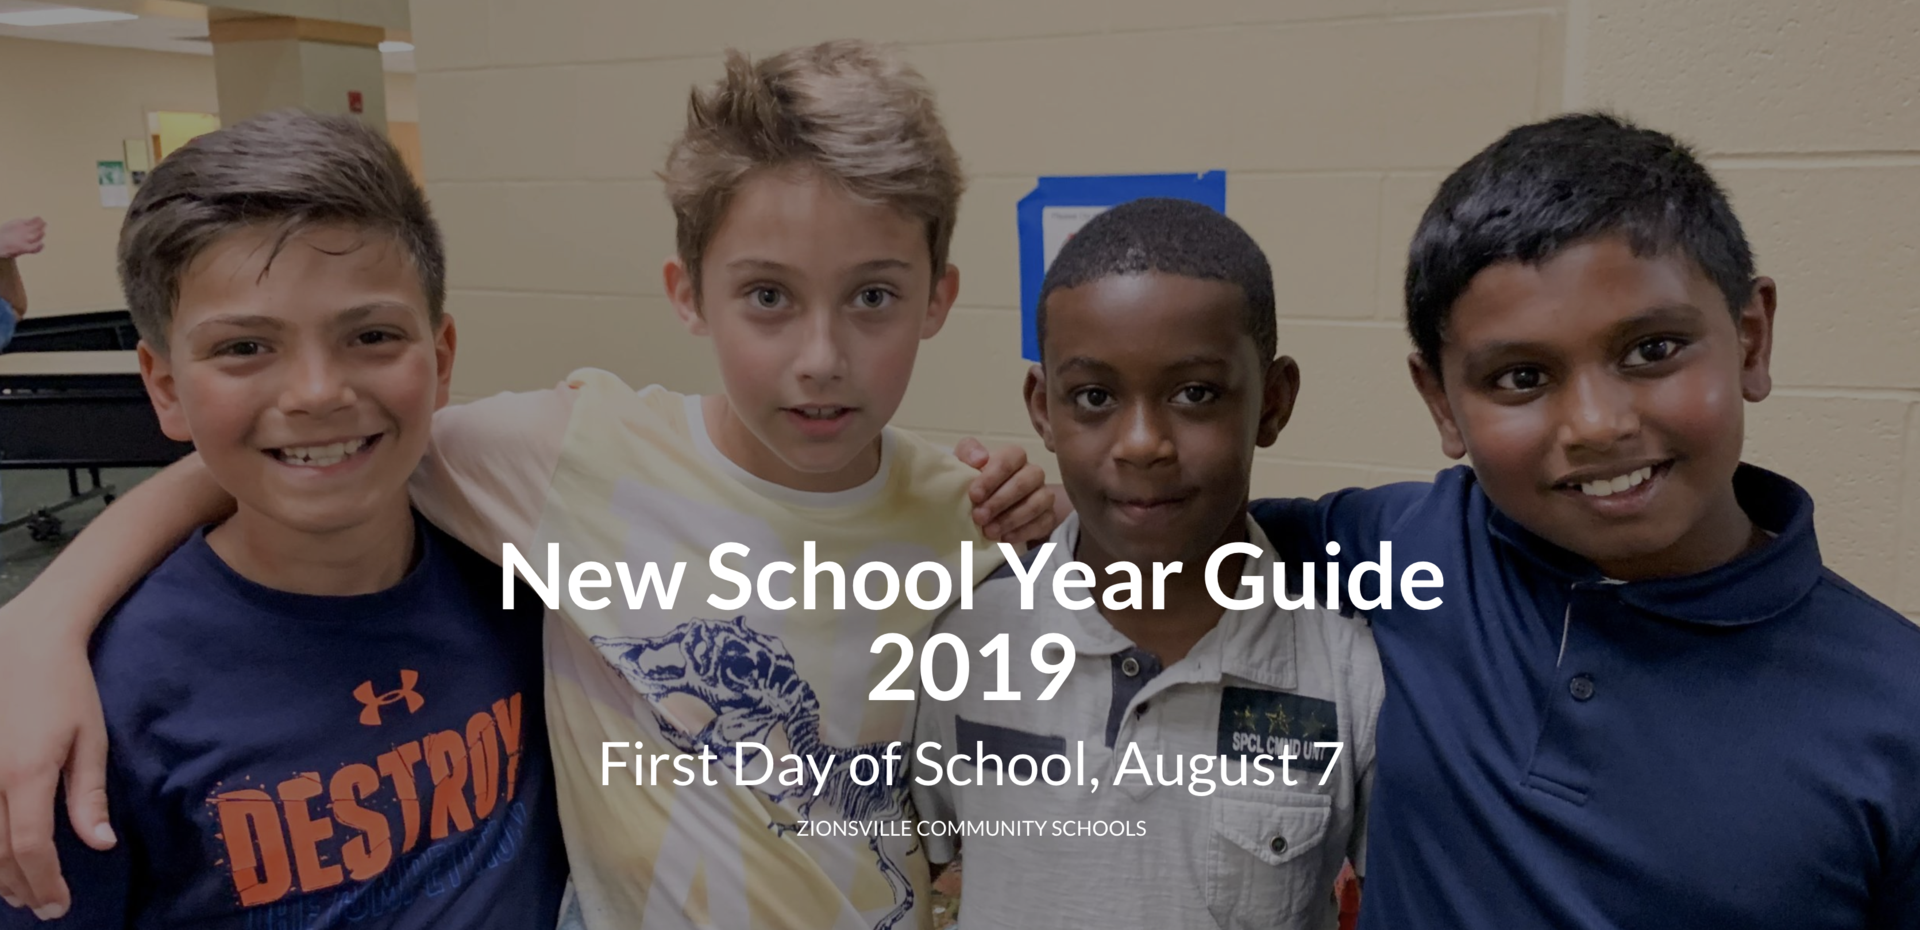 2019 New School Year Guide